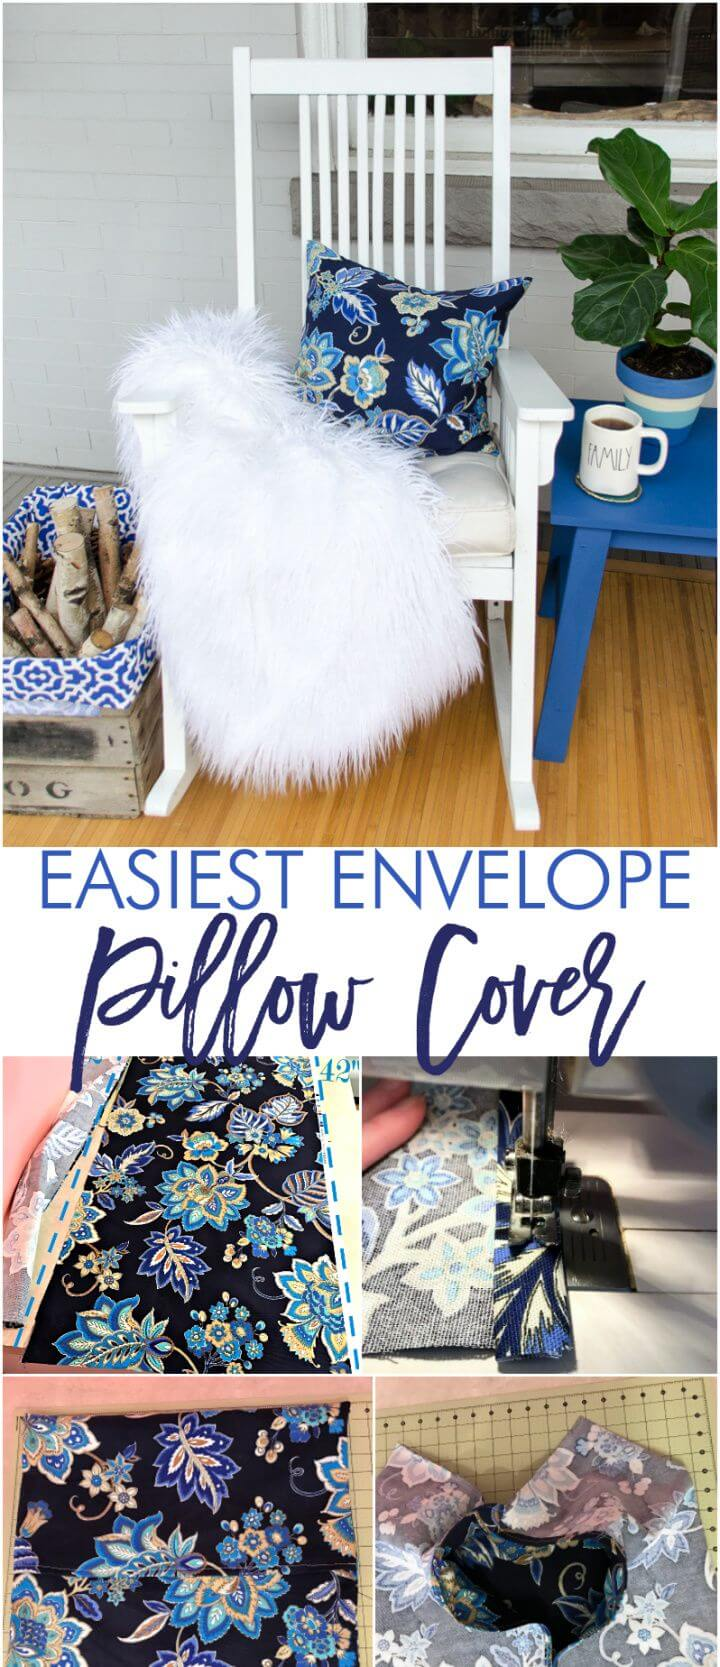 Easy DIY One Piece Fabric Envelope Pillow Cover Tutorial